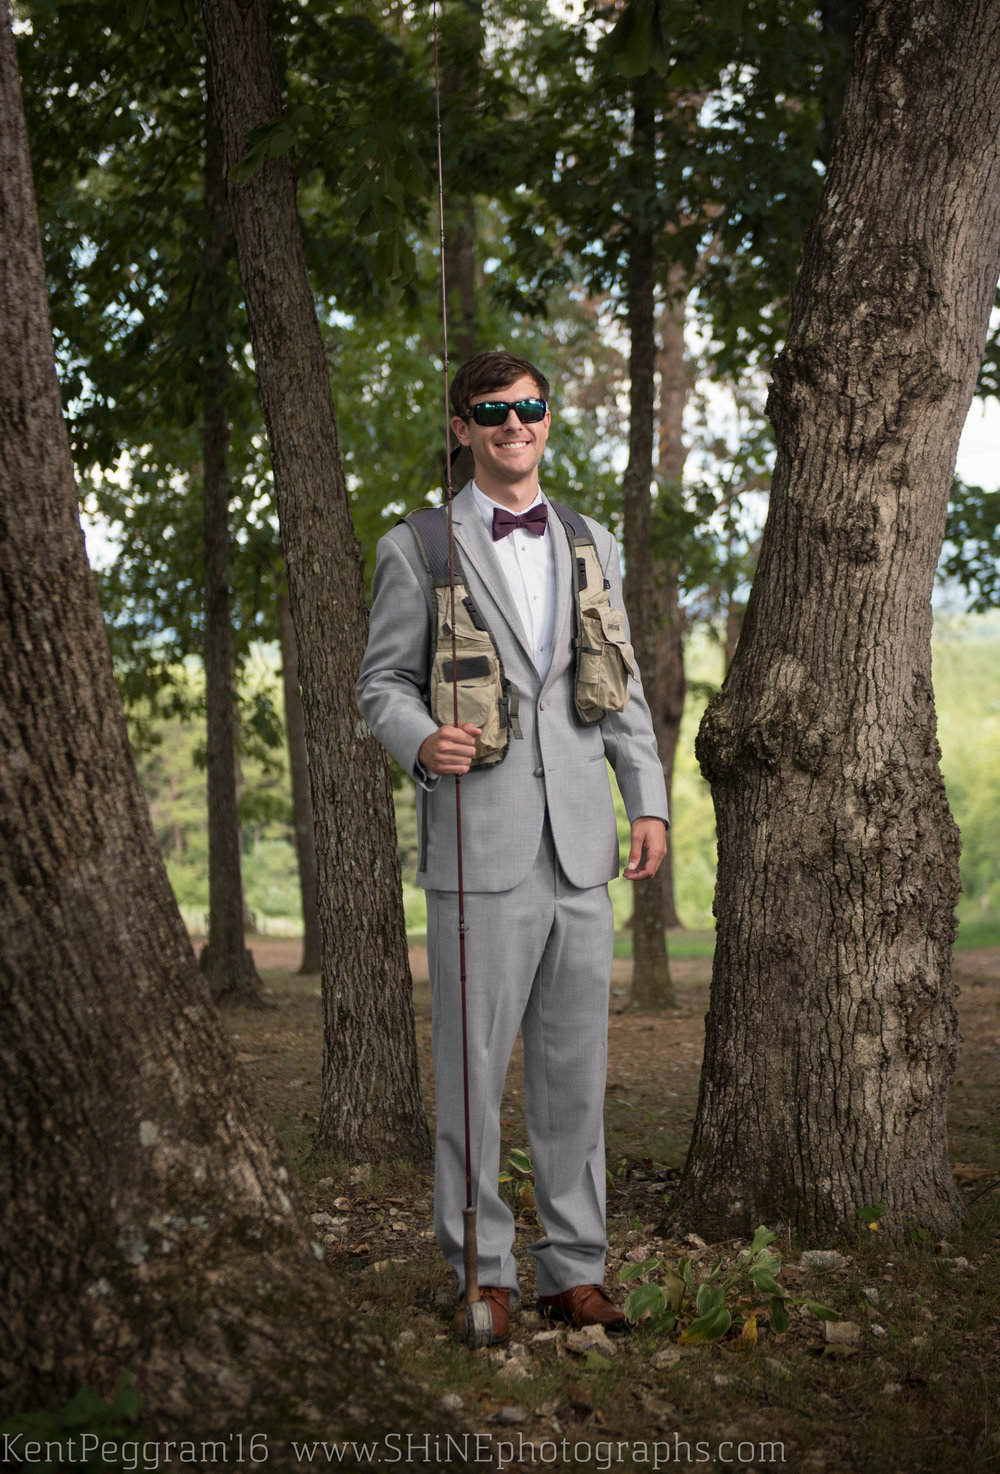 CraigWedding.watermarked.optimized-49.jpg